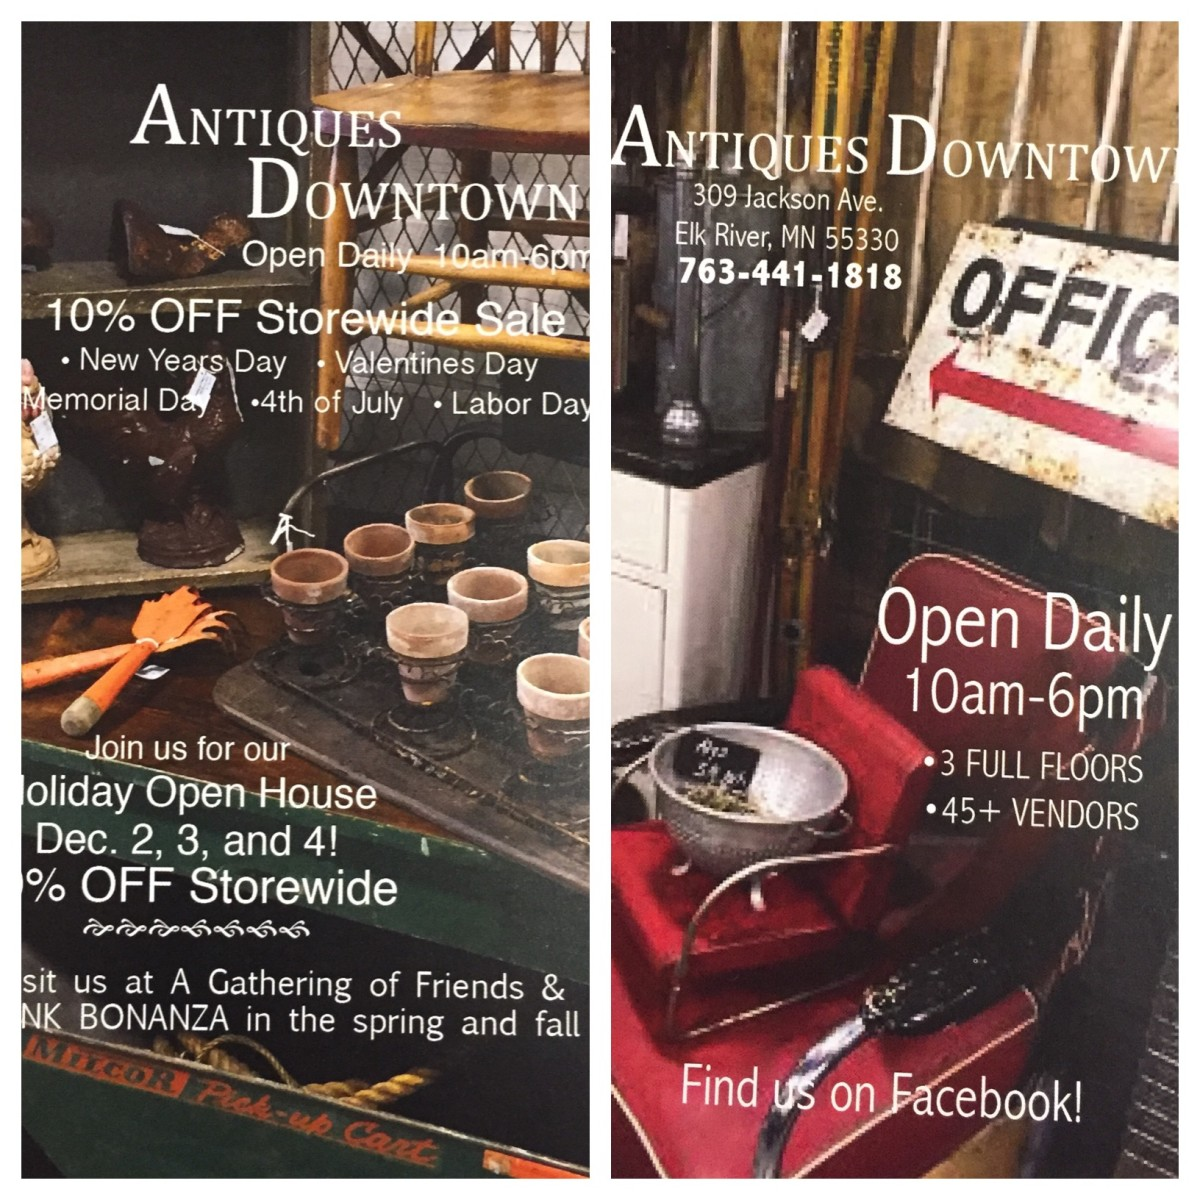 Restaurants Open On Christmas Day 2020 In Elk River, Mn Antiques Downtown | Explore Minnesota